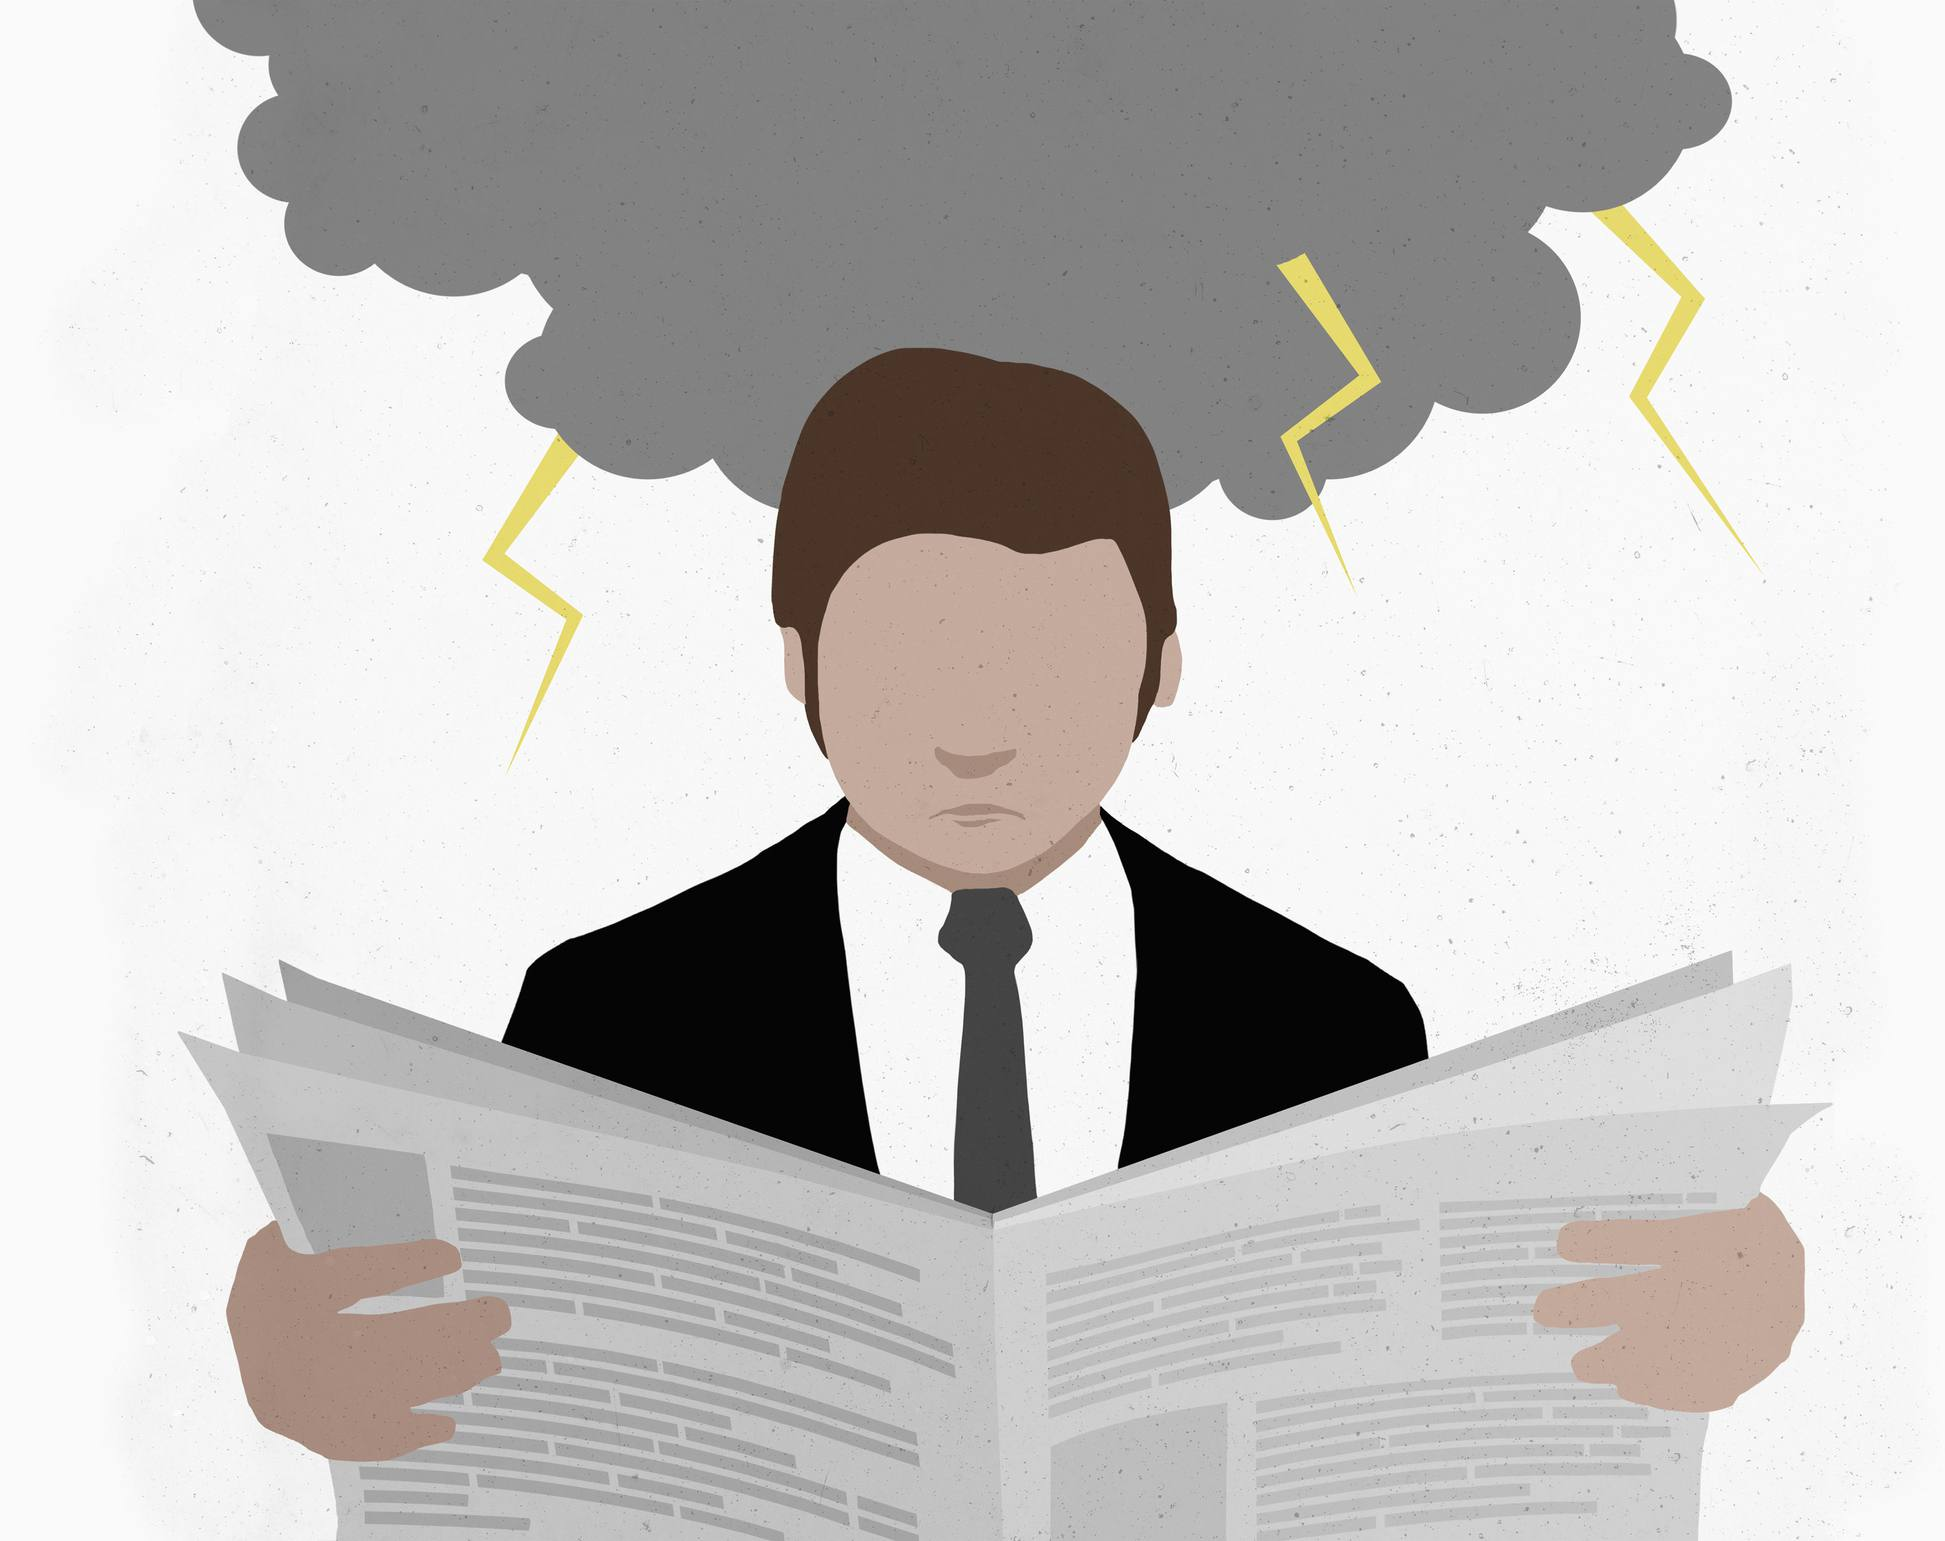 Person reading newspaper with rain cloud overhead